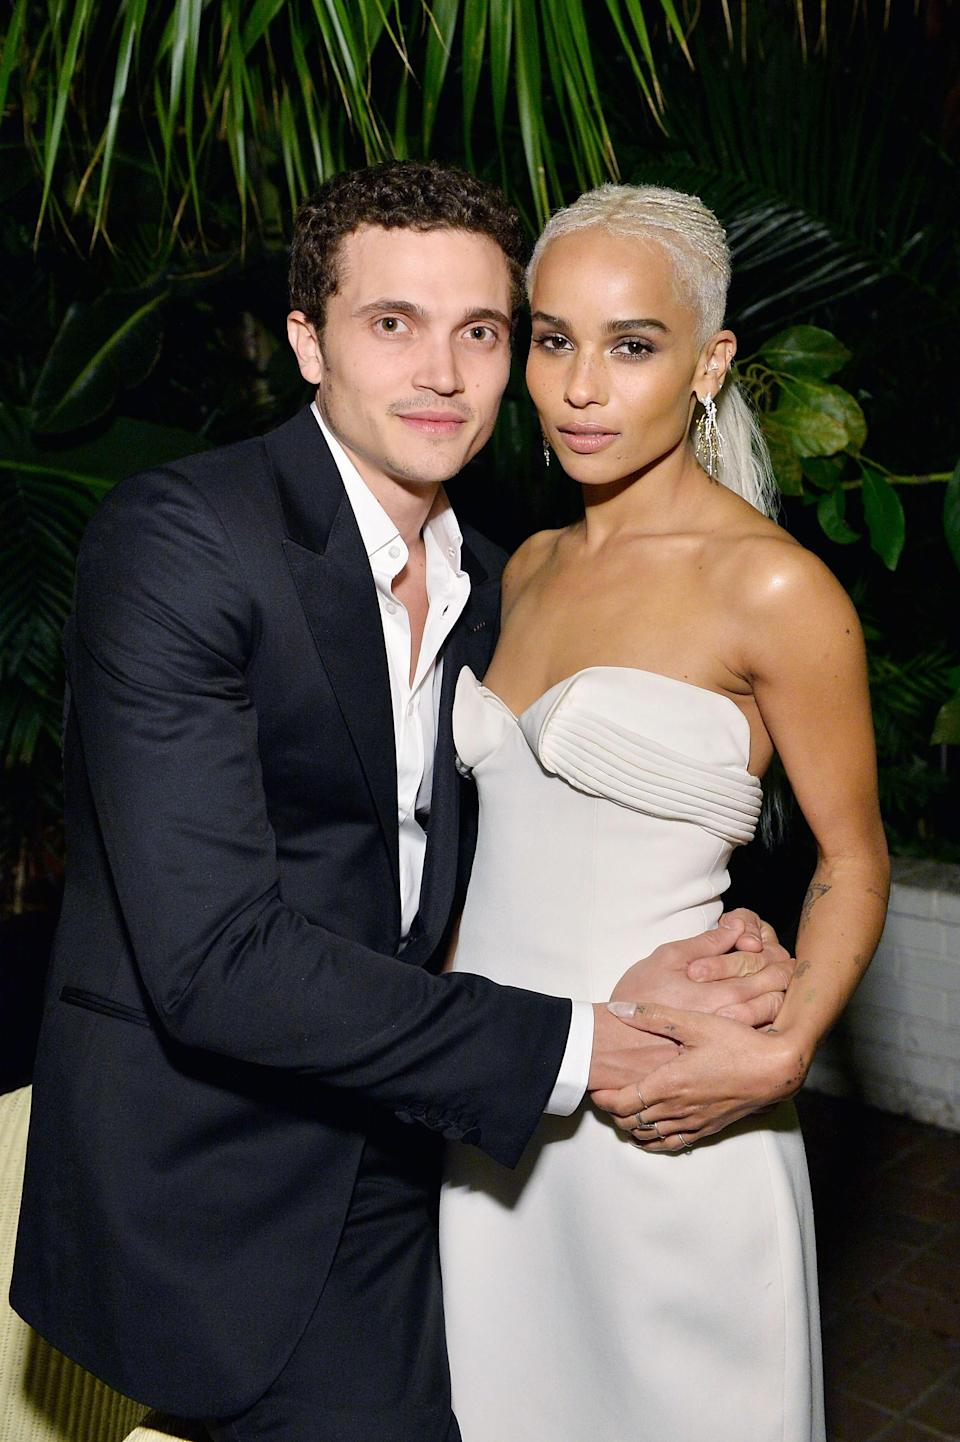 """After just over four years together and 18 months as a married couple, Zoë Kravitz and Karl Glusman have split, a rep confirmed to <a href=""""https://people.com/movies/zoe-kravitz-files-for-divorce-from-karl-glusman/"""" rel=""""nofollow noopener"""" target=""""_blank"""" data-ylk=""""slk:People"""" class=""""link rapid-noclick-resp""""><em>People</em></a>. According to court documents, Kravitz actually filed for divorce from Glusman on December 23, 2020, but the news didn't hit the public until January 2, 2021."""